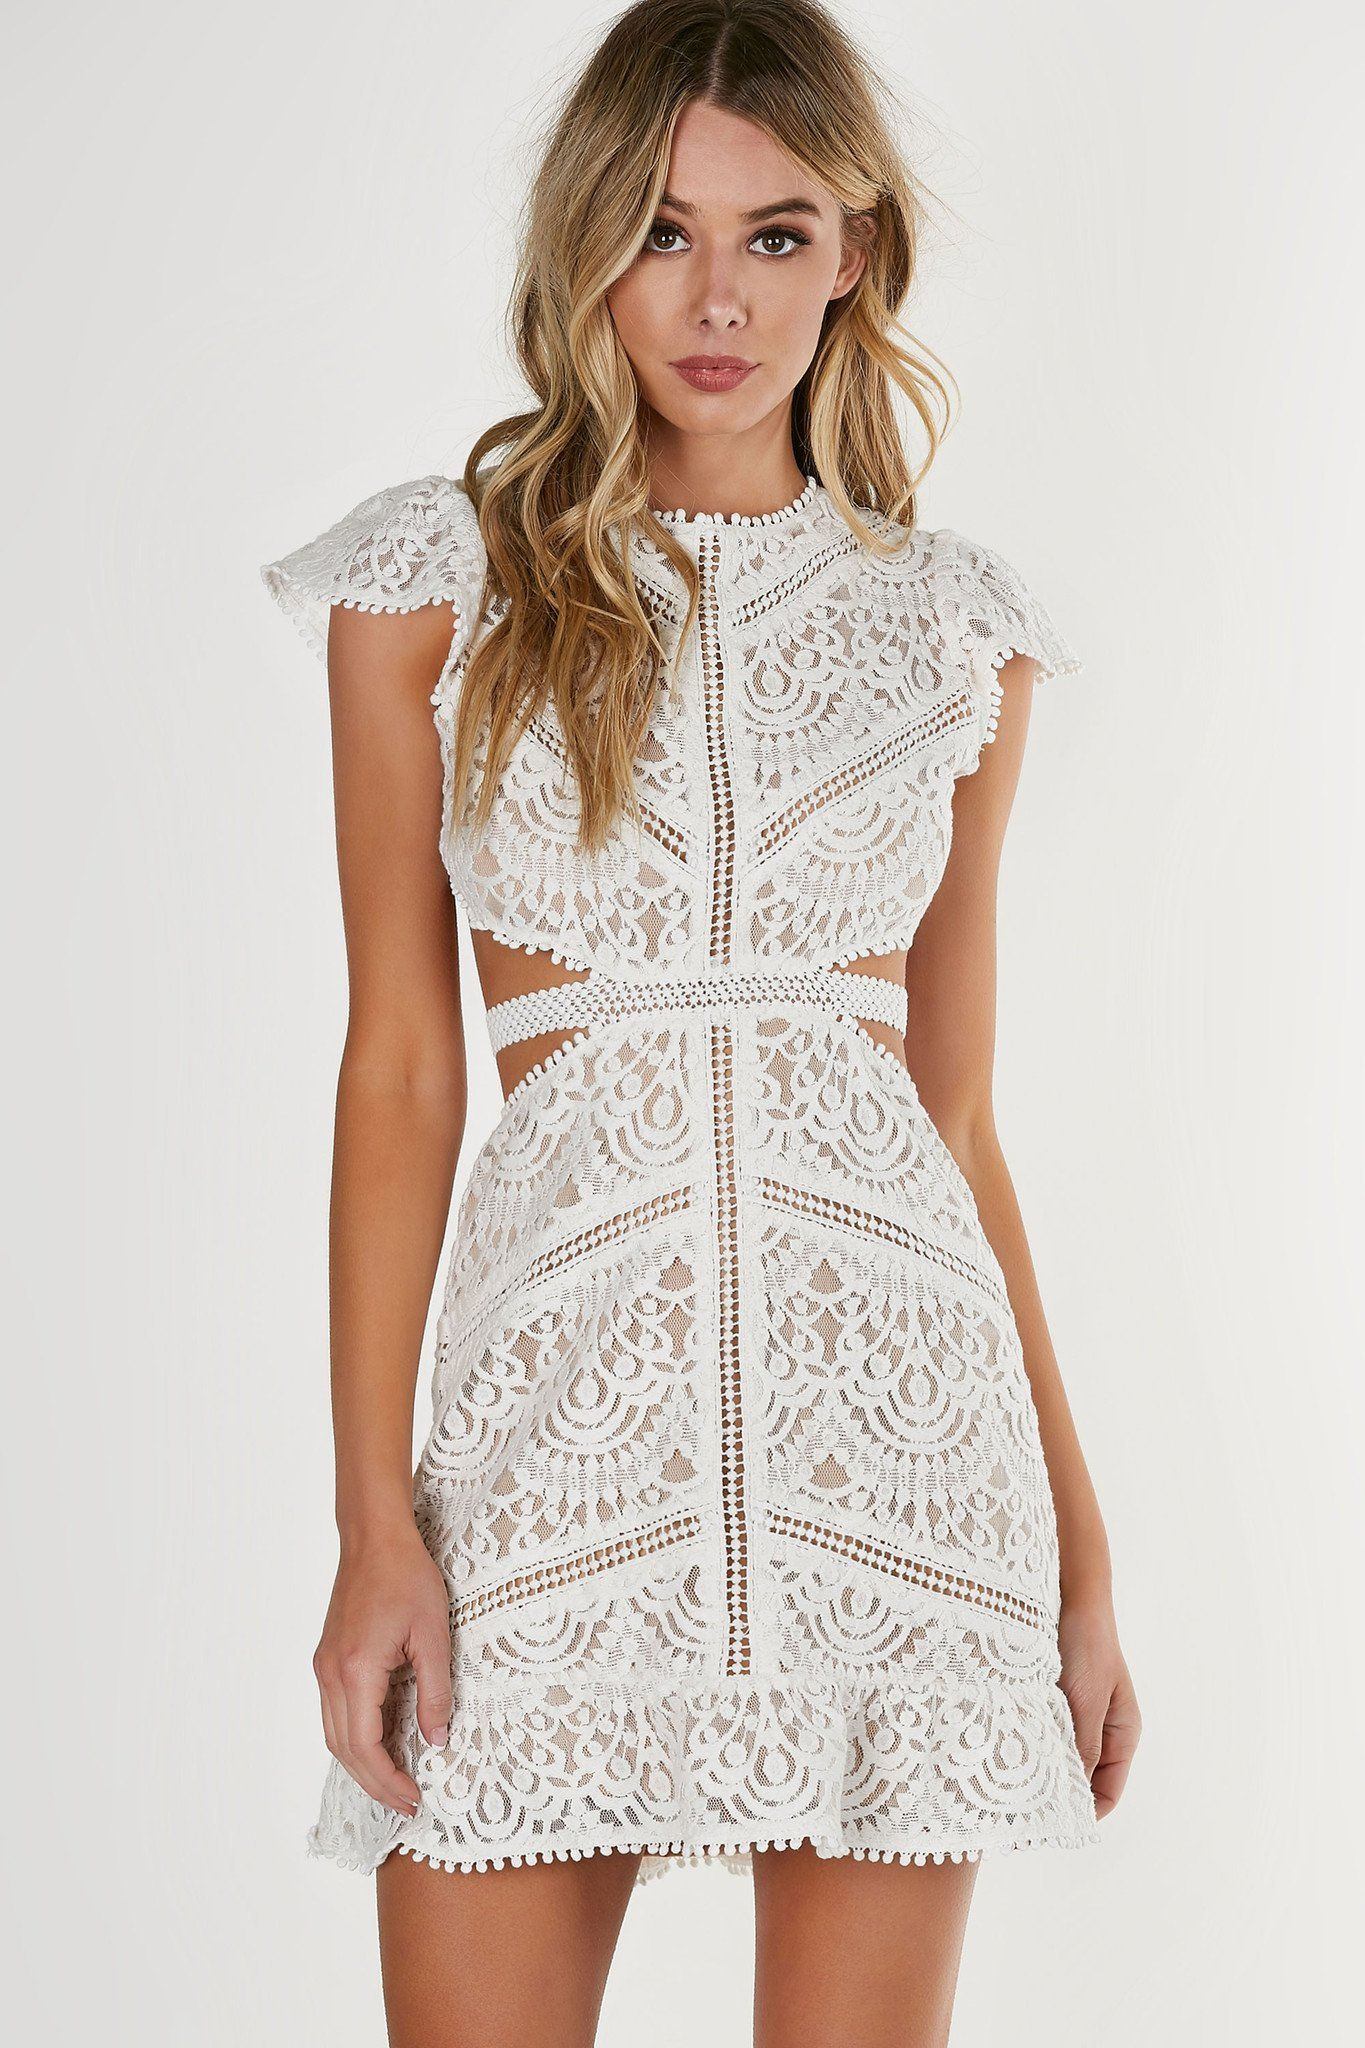 967331e442 Round neck short sleeve dress with flirty A-line hem and cut outs at waist.  Open back with a button closure. Intricate crochet overlay with full lining.